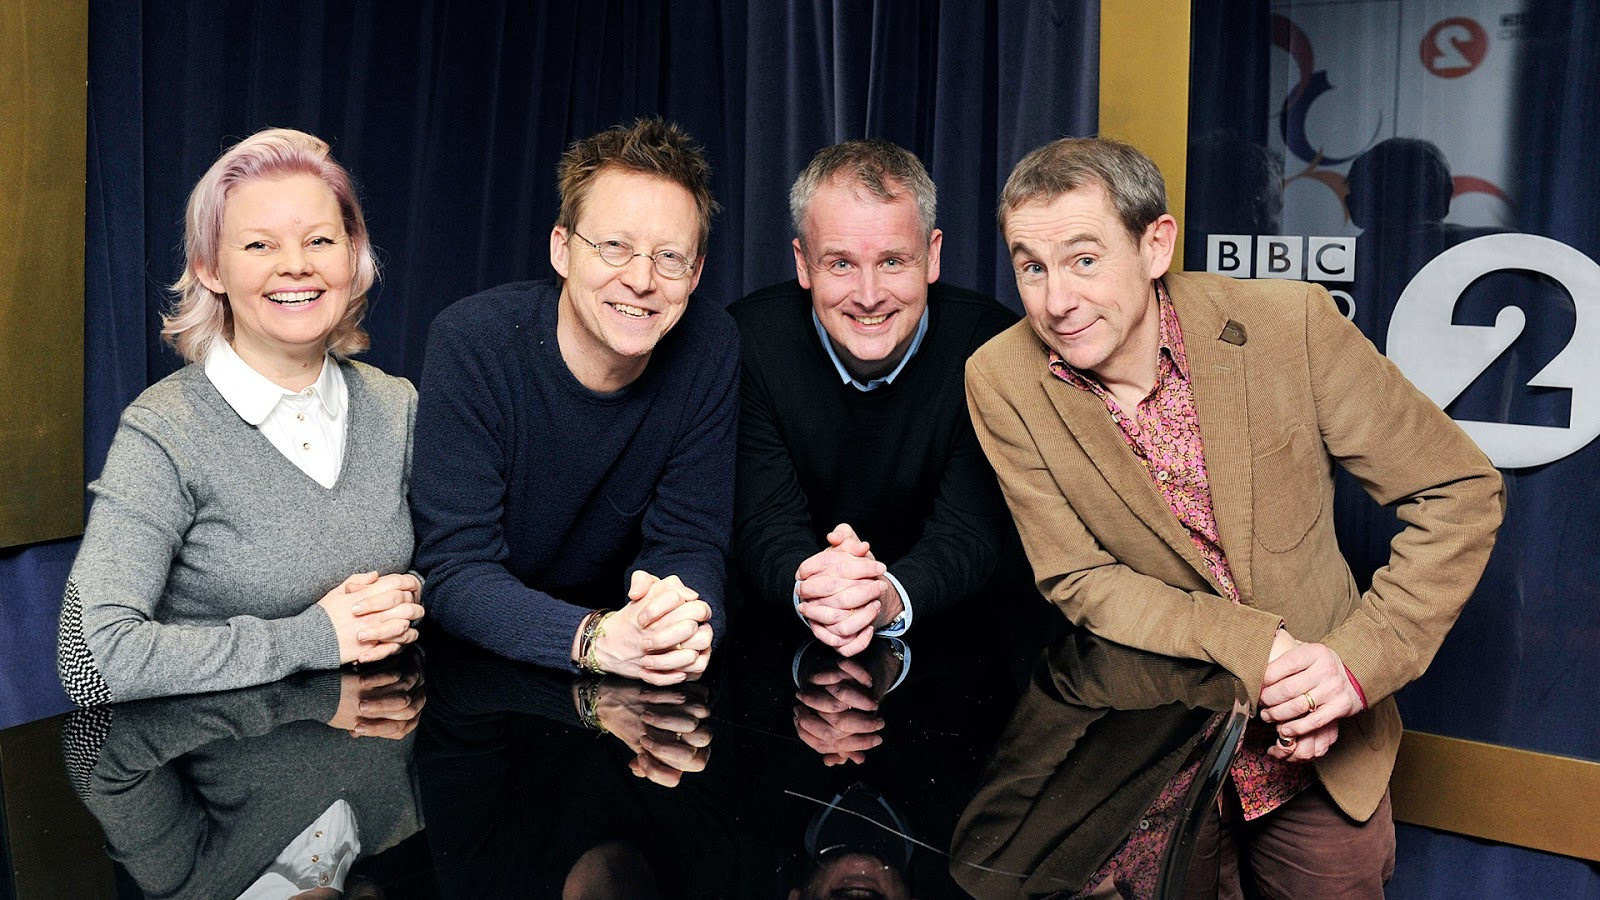 The original BBC Radio 2 Drivetime Dreamteam, including Simon Mayo, Matt Williams and Bobbie Pryor